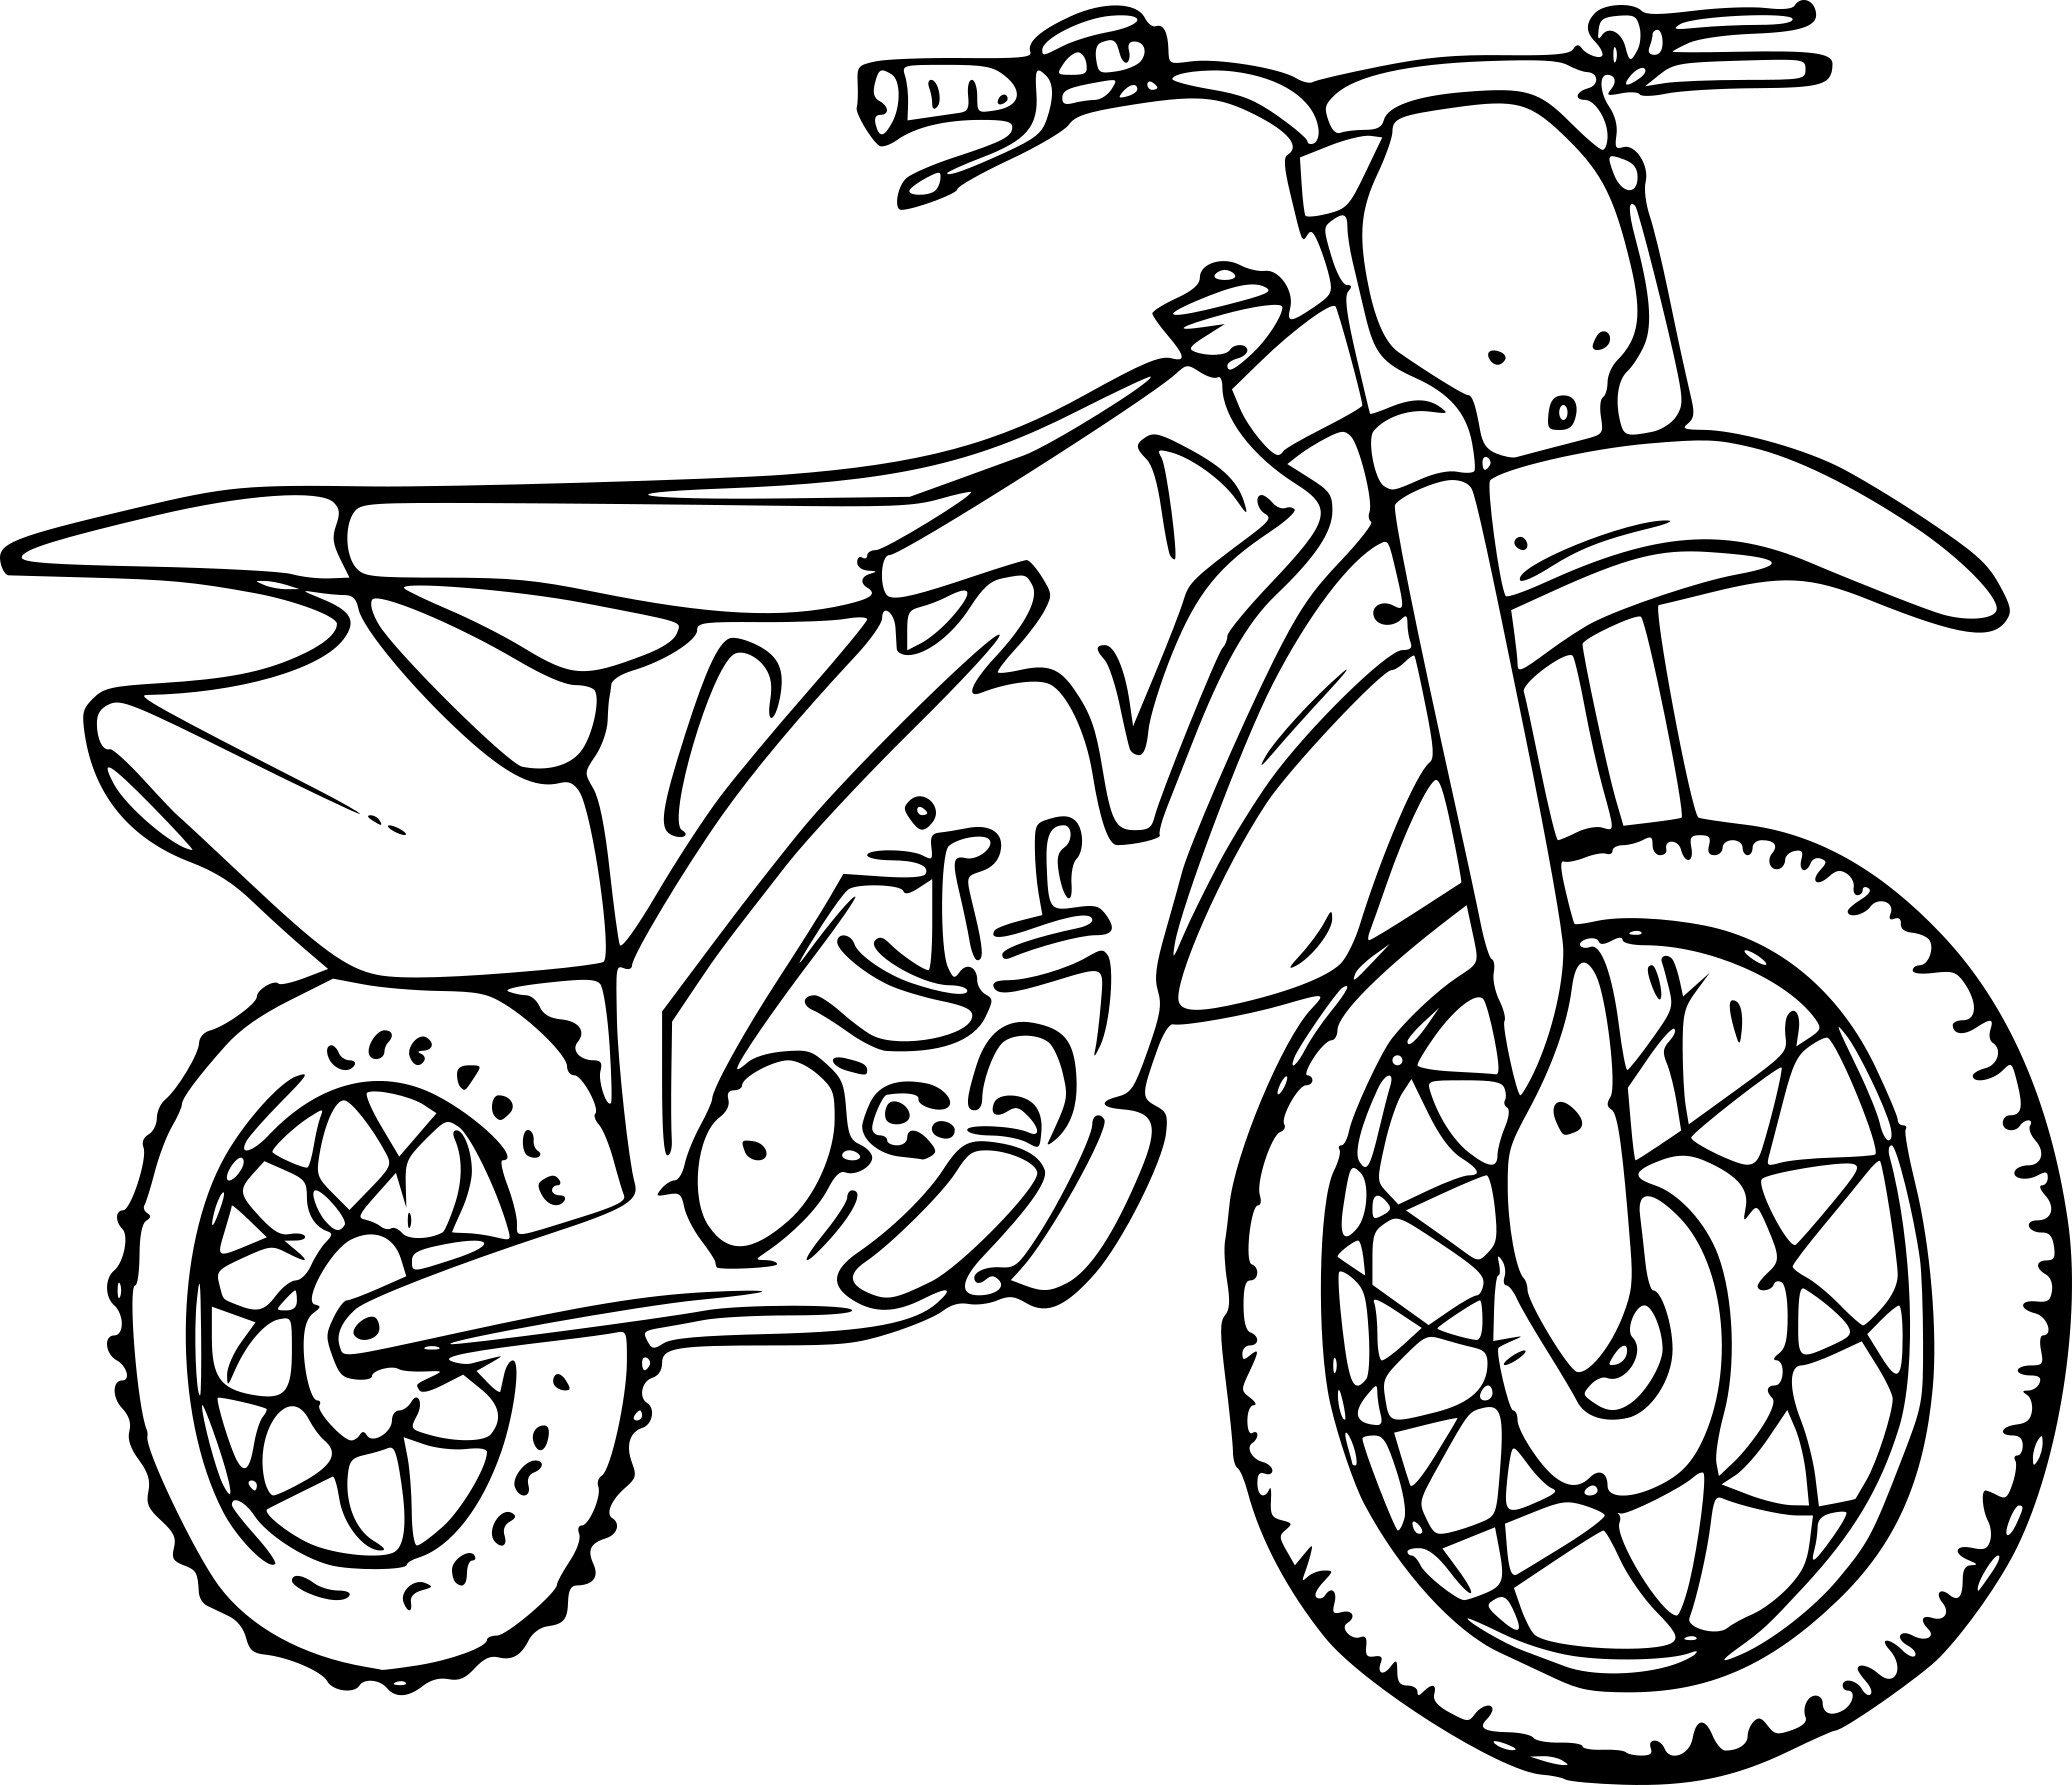 coloriage motocross dessin imprimer sur coloriages info. Black Bedroom Furniture Sets. Home Design Ideas